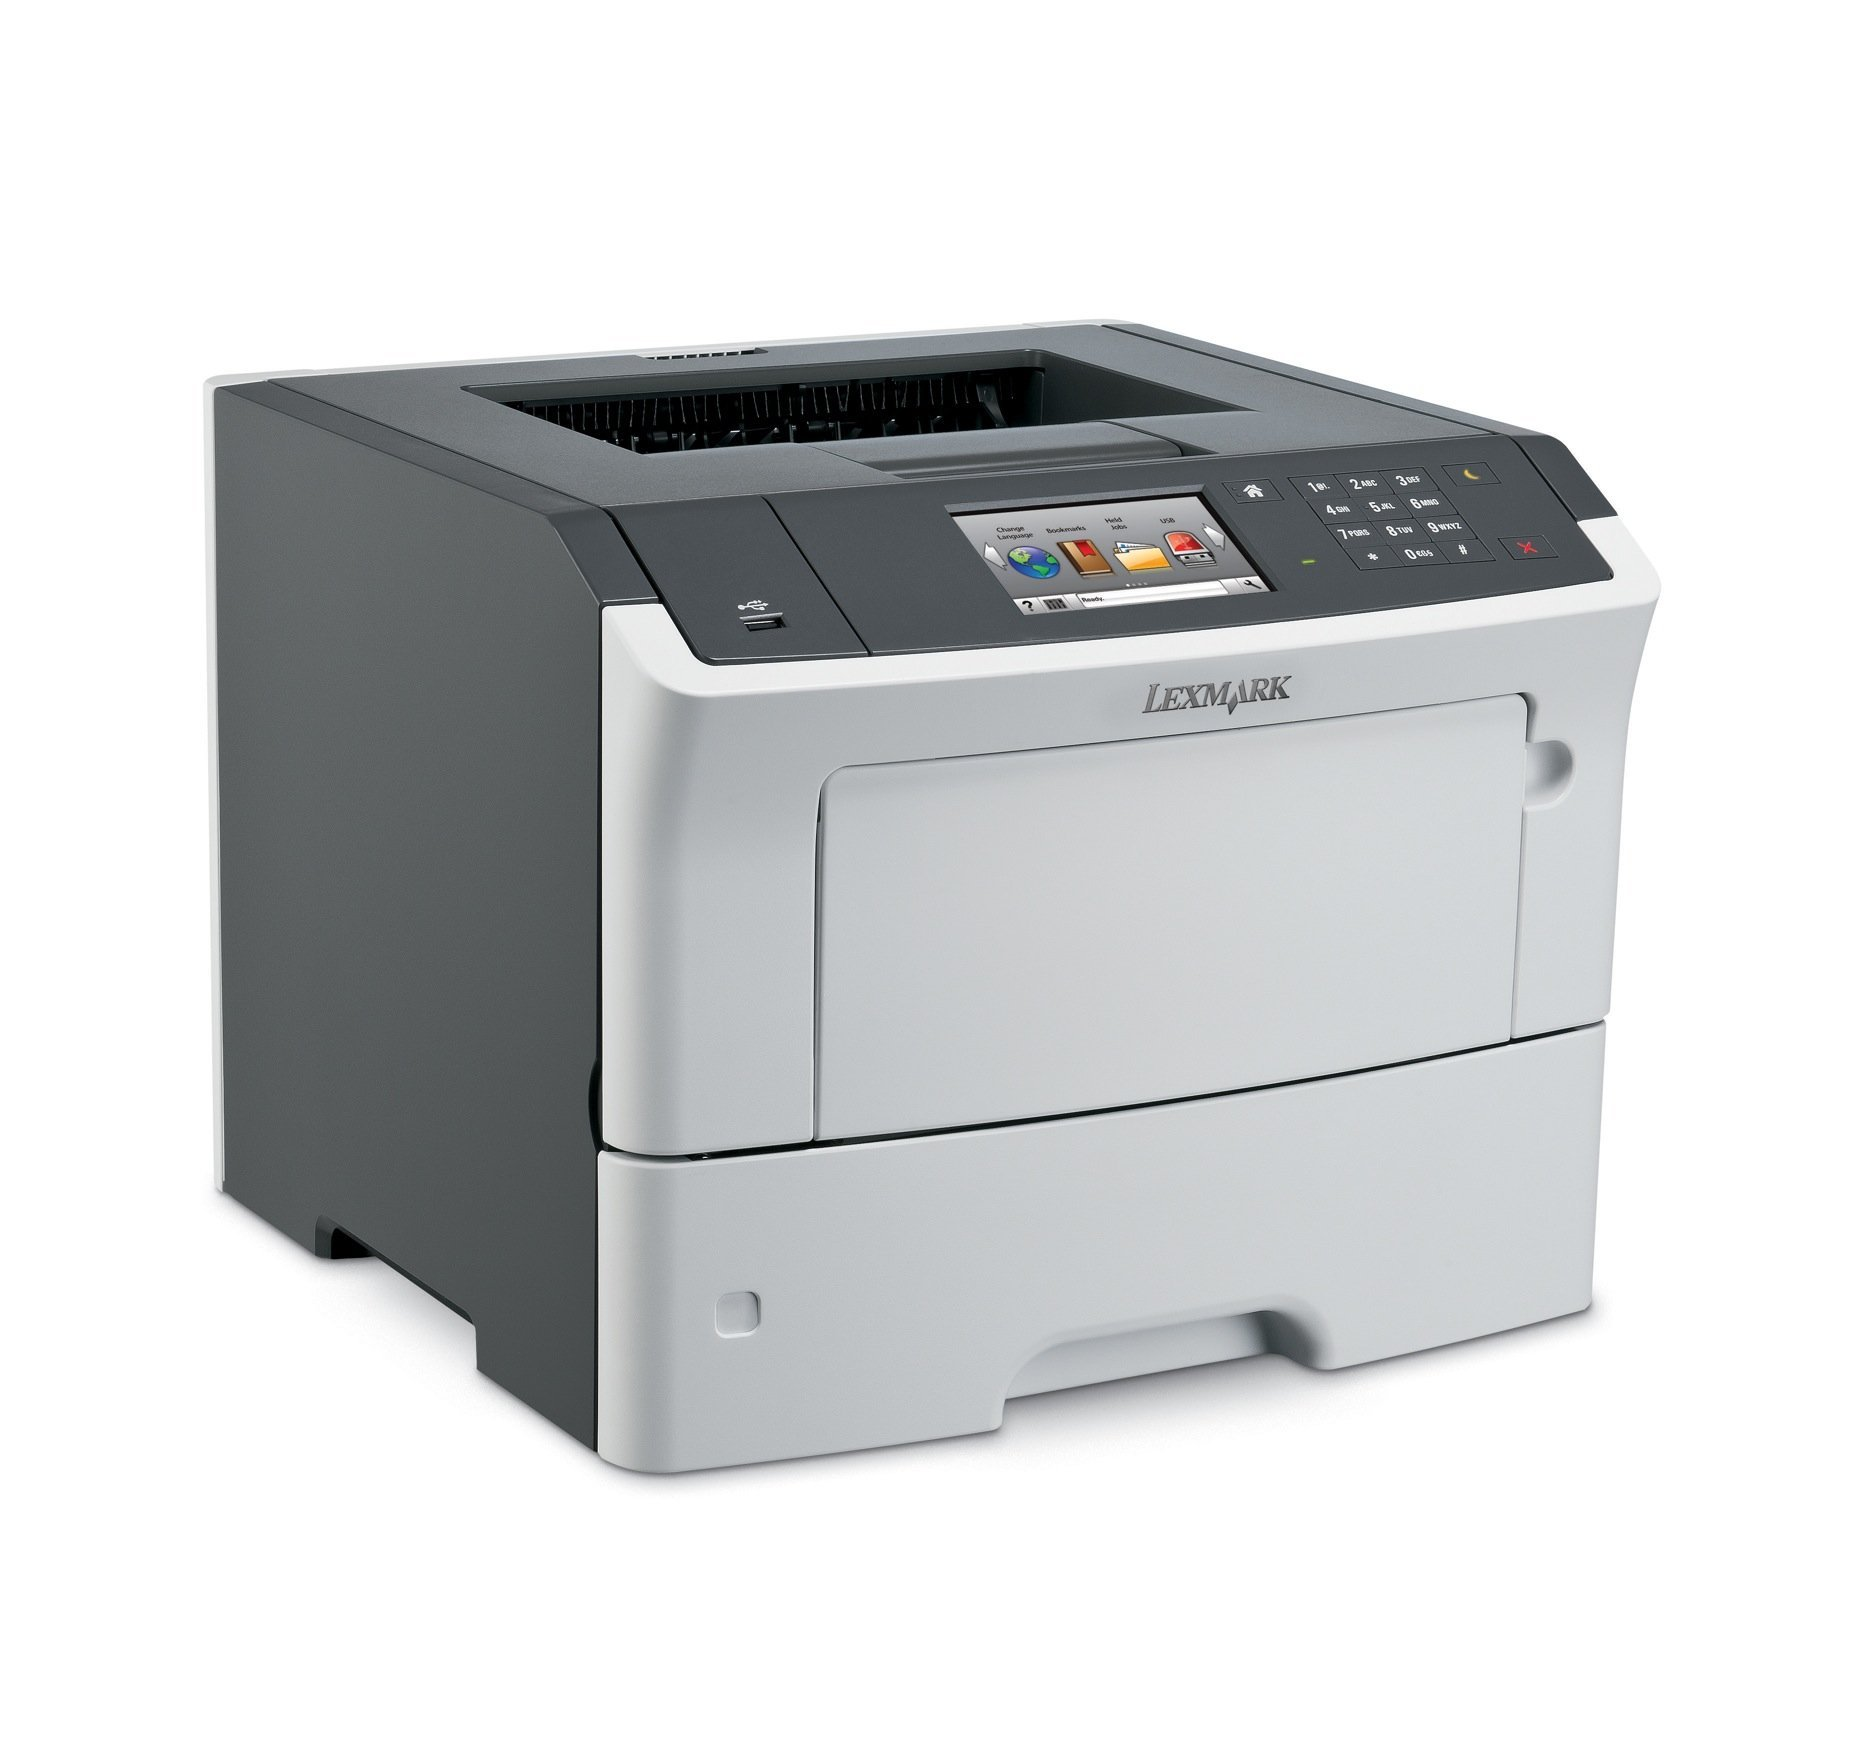 Lexmark MS610DE MonoChrome Laser Printer - 35S0500 by Lexmark (Image #9)